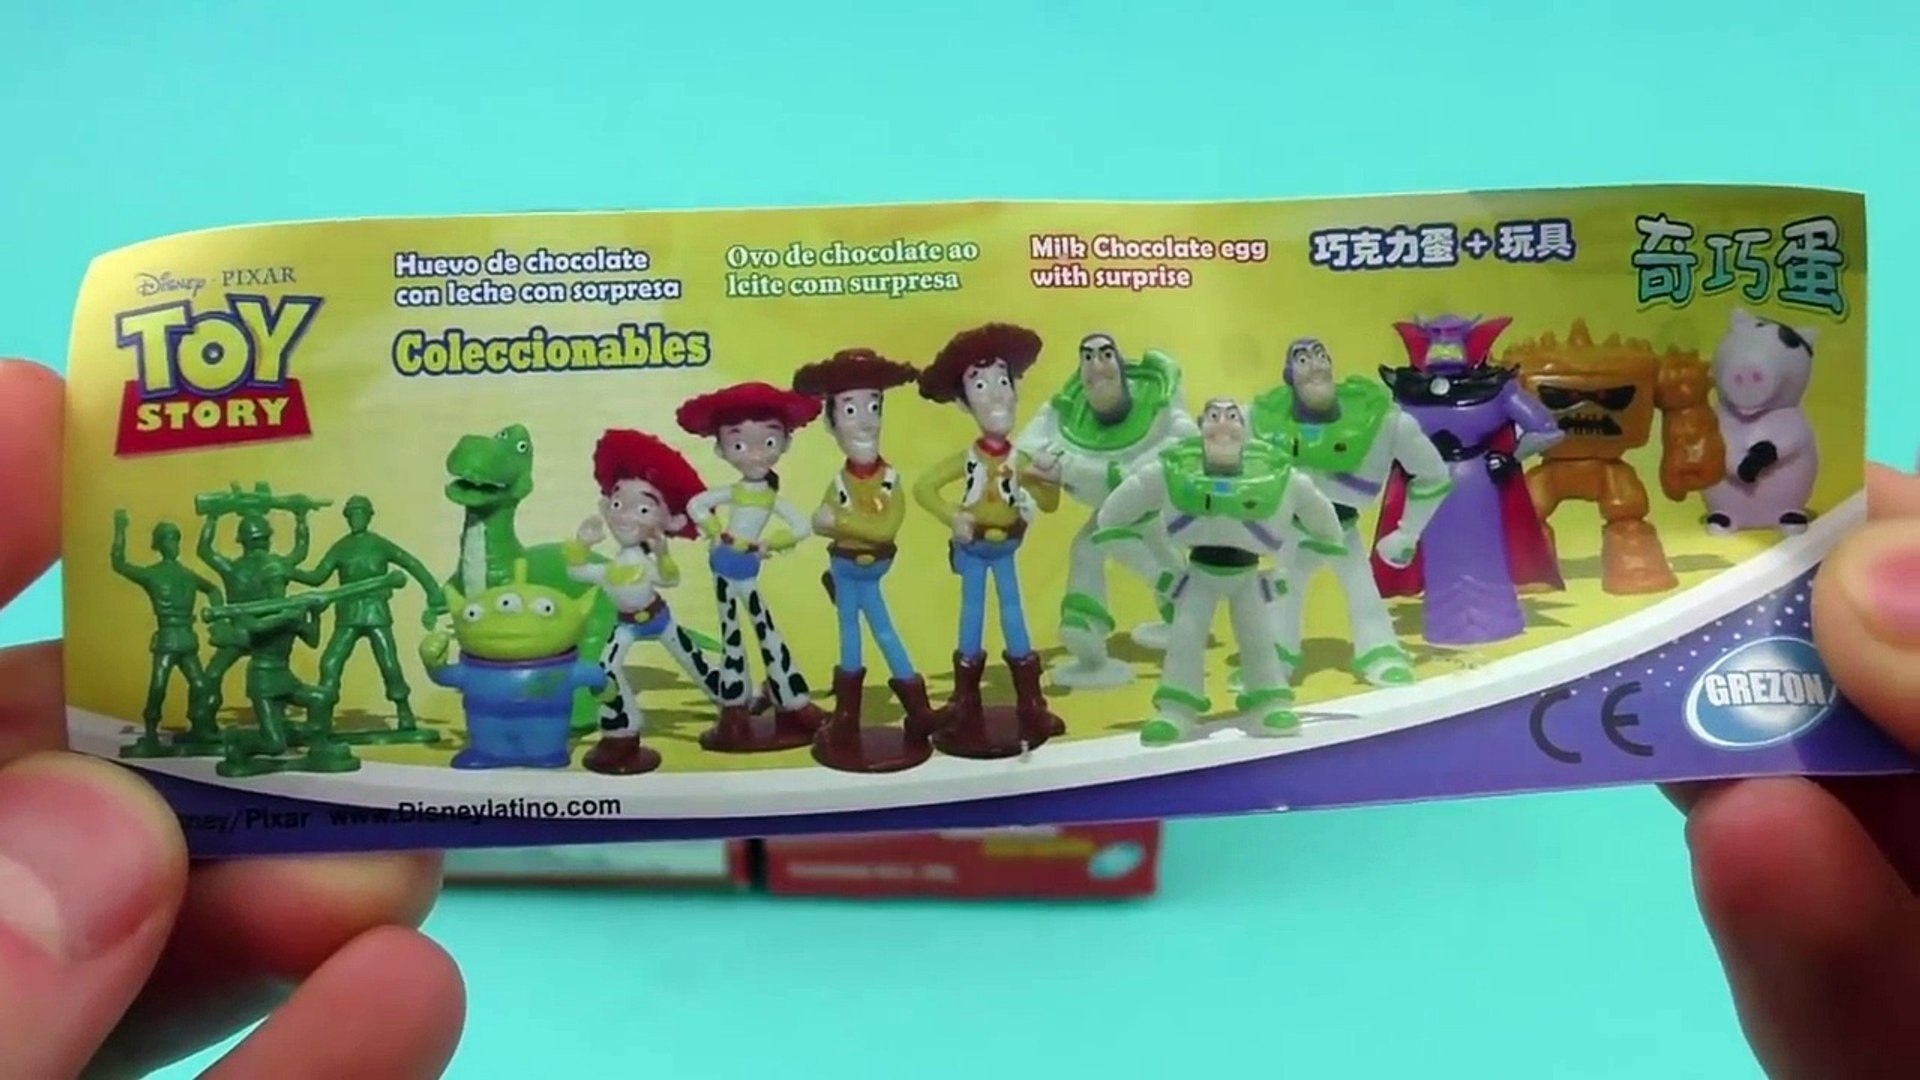 Toy Story Surprise Eggs Unboxing - Buzz Lightyear, Little Green Men, Jessie - Toy Story Toys